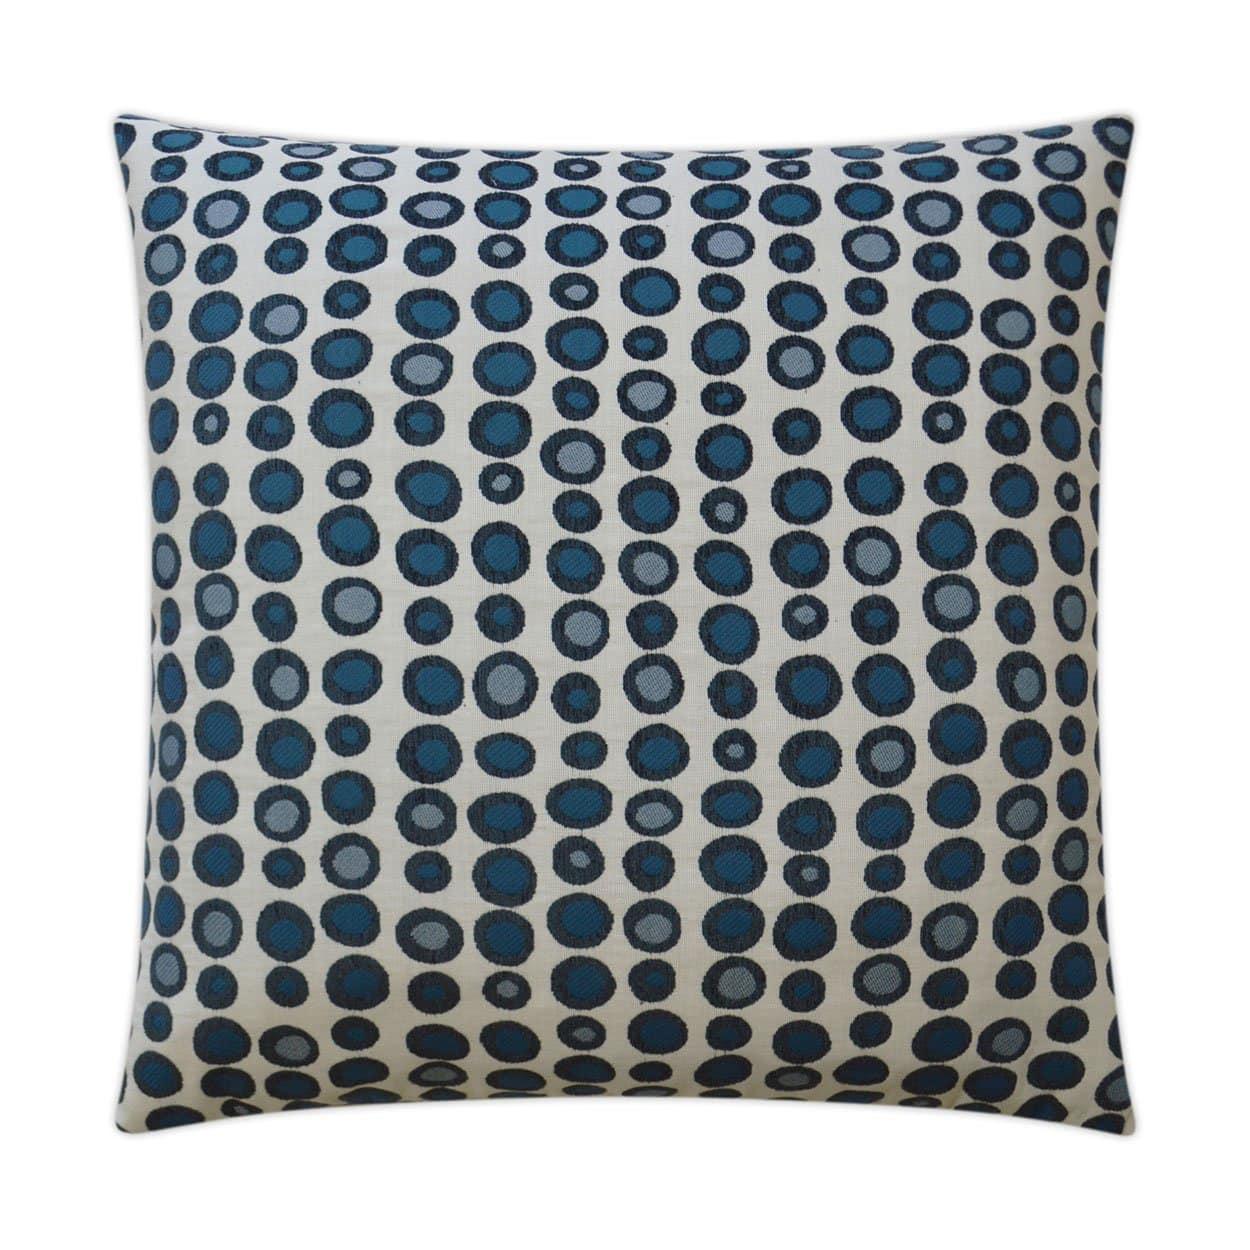 D.V. Kap D.V. Kap Spotify Pillow Midnight 3083-M